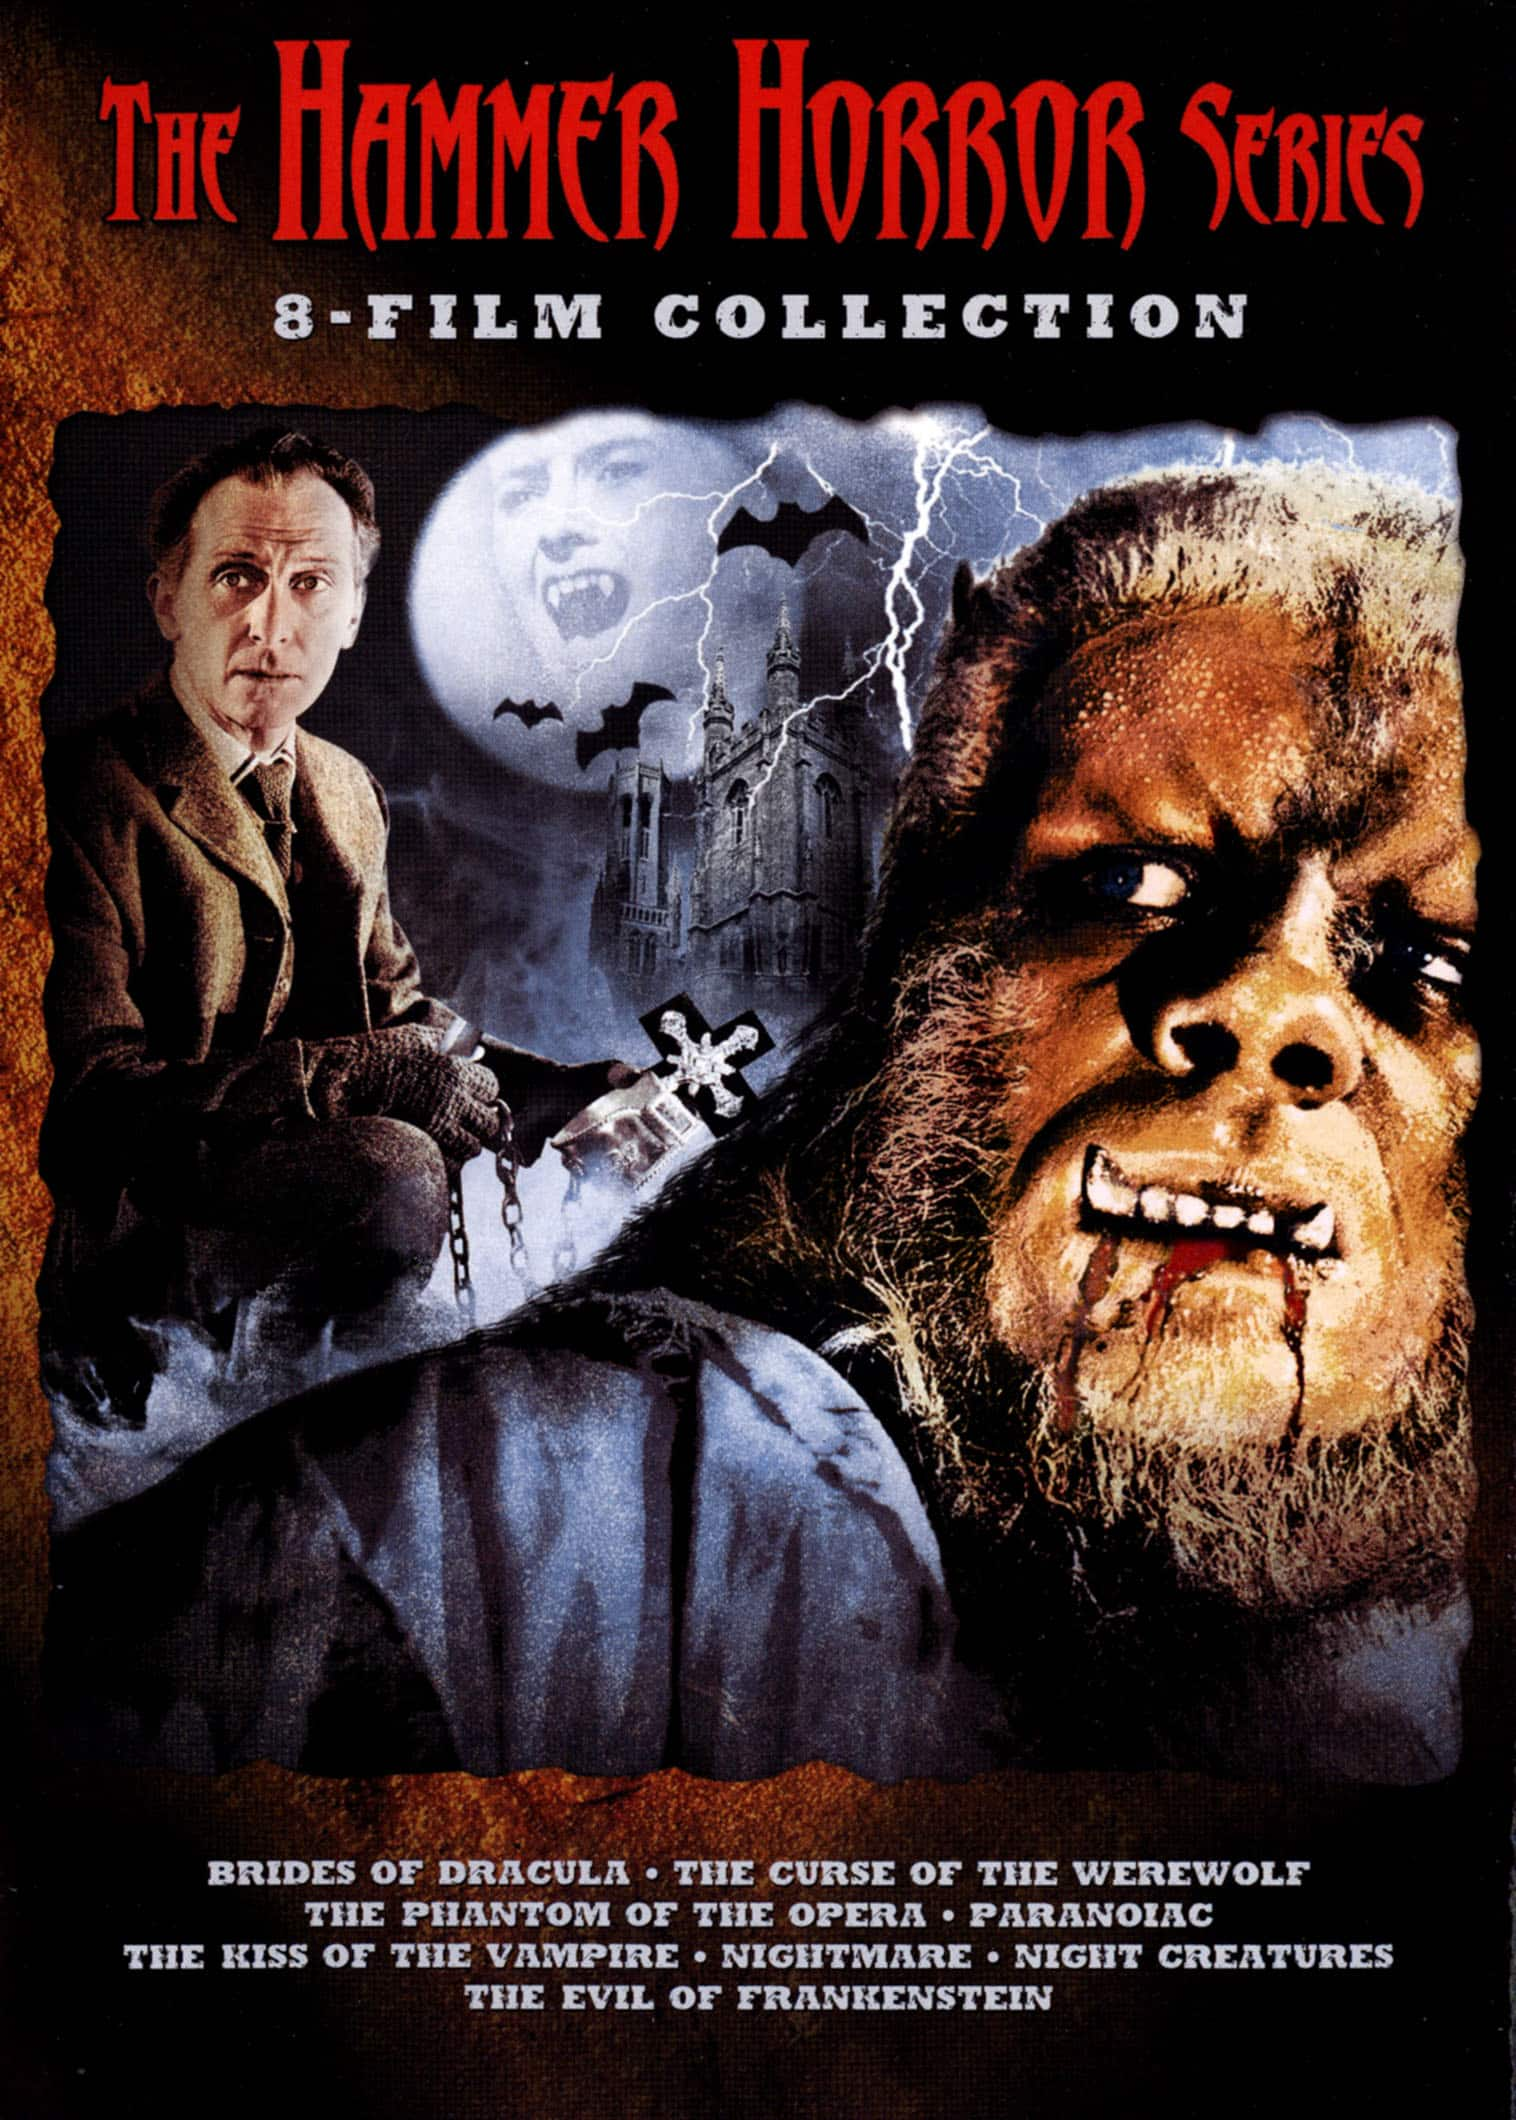 8 movie The Hammer Horror Series (Brides of Dracula, Curse of the Werewolf & more) DVD Collection $12 + Free shipping w/ Prime